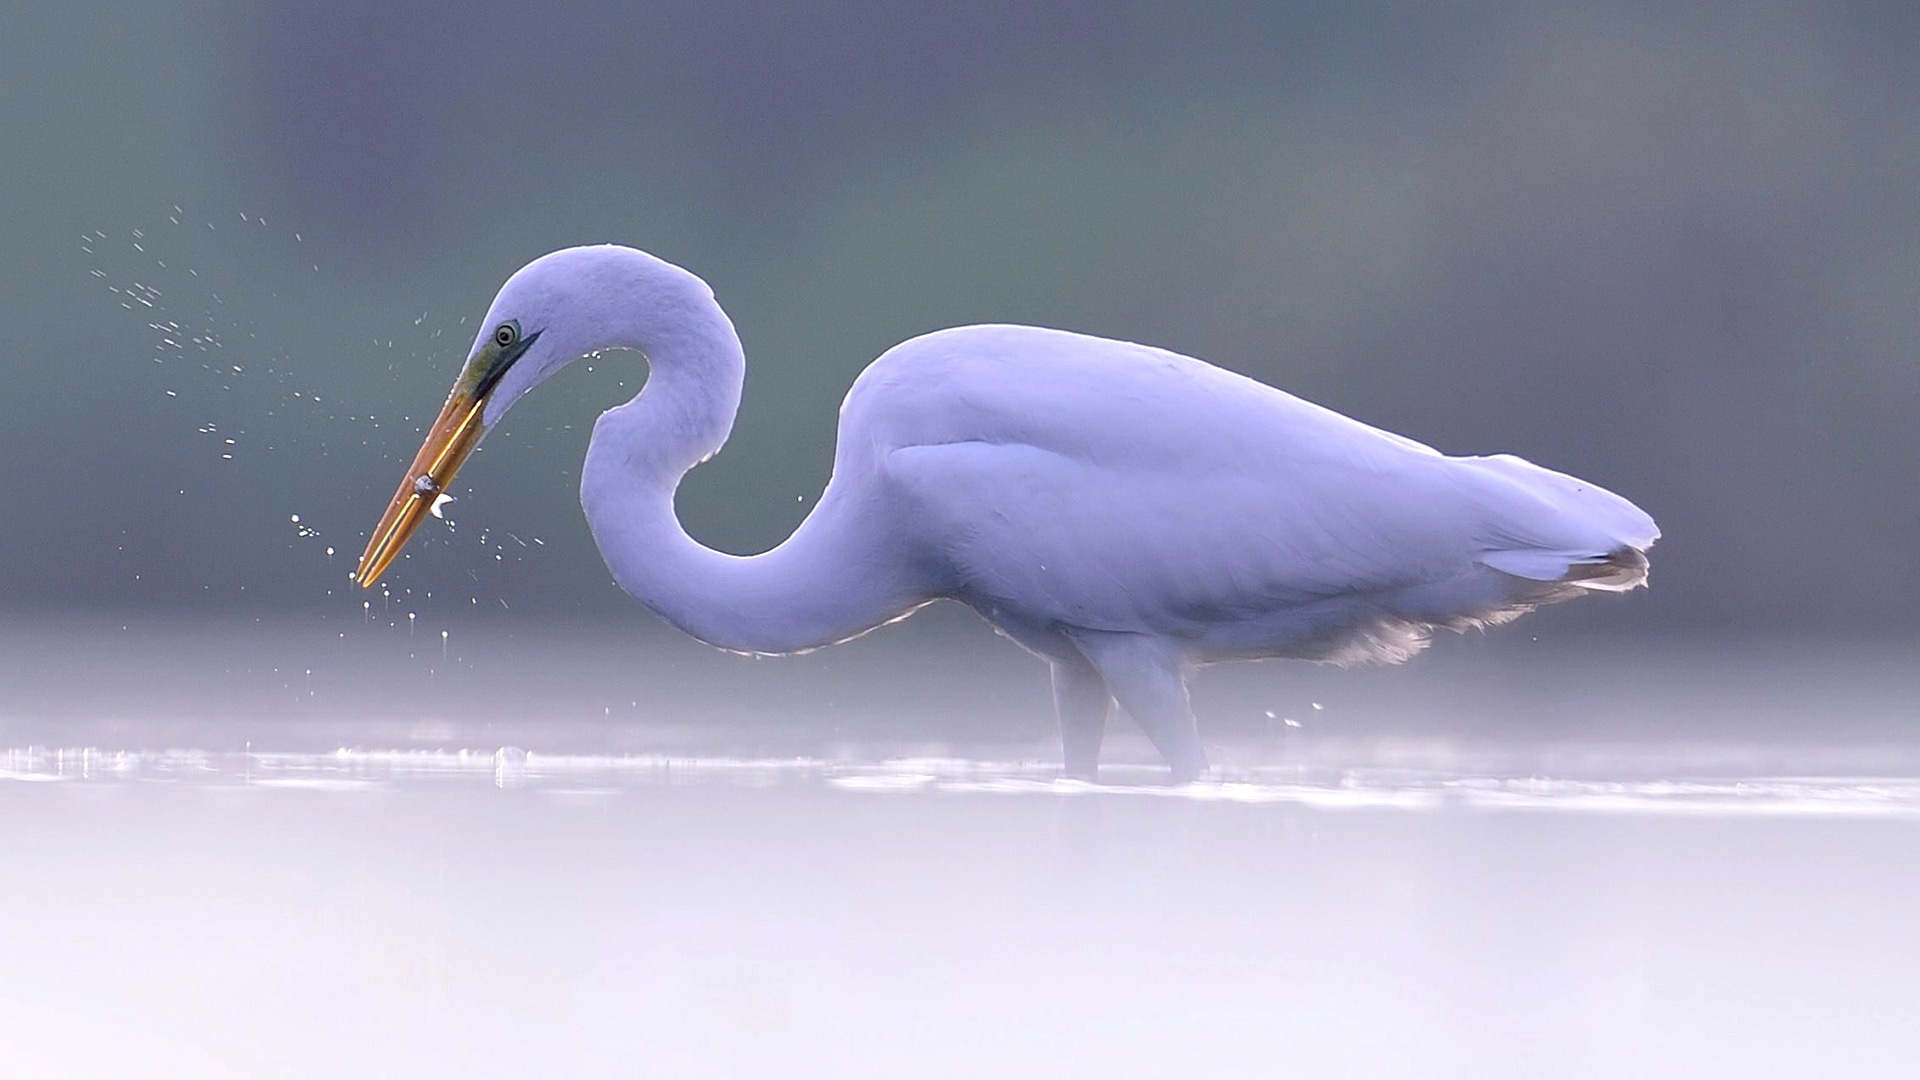 Image: South Korea animals - heron